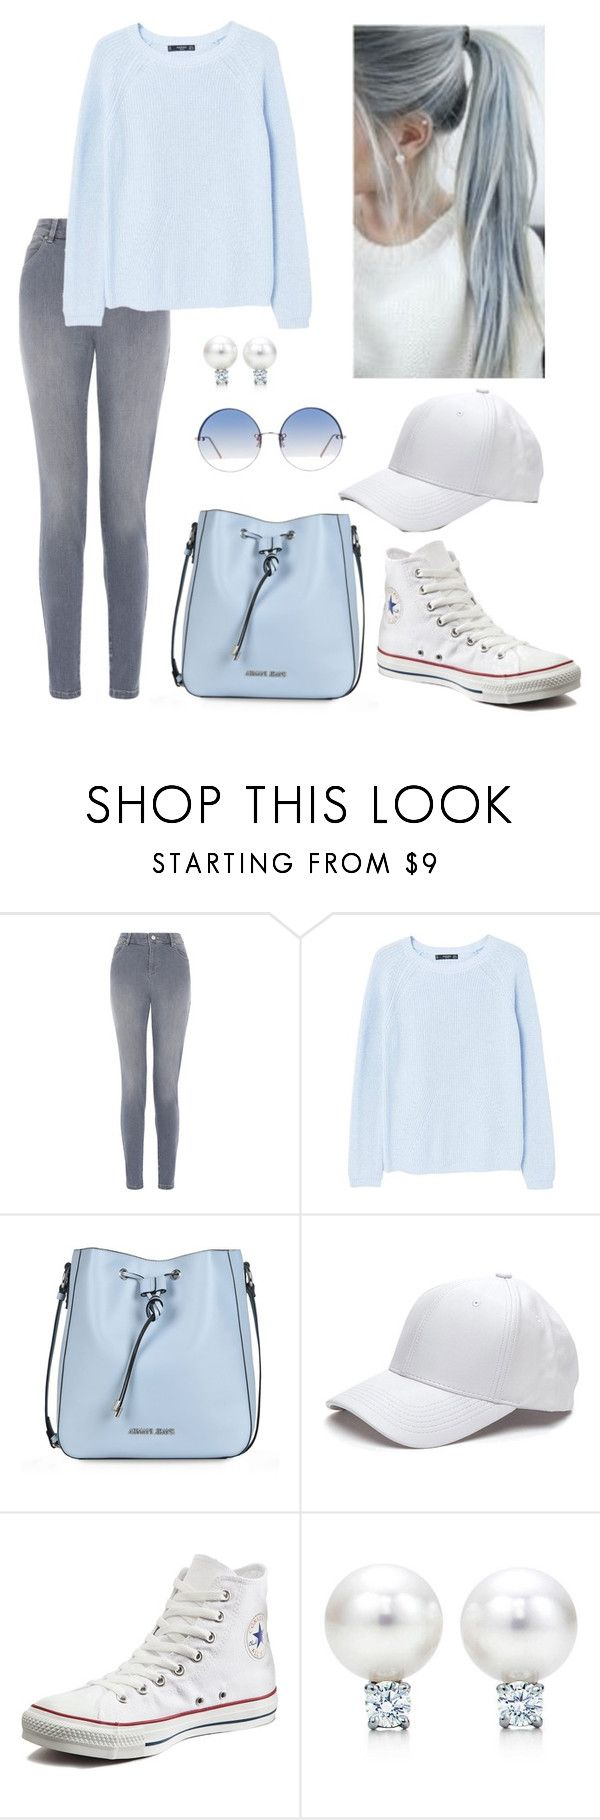 """denim"" by lichuchu ❤ liked on Polyvore featuring beauty, Monsoon, MANGO, Armani Jeans, Converse, Linda Farrow, hairtrend and rainbowhair"